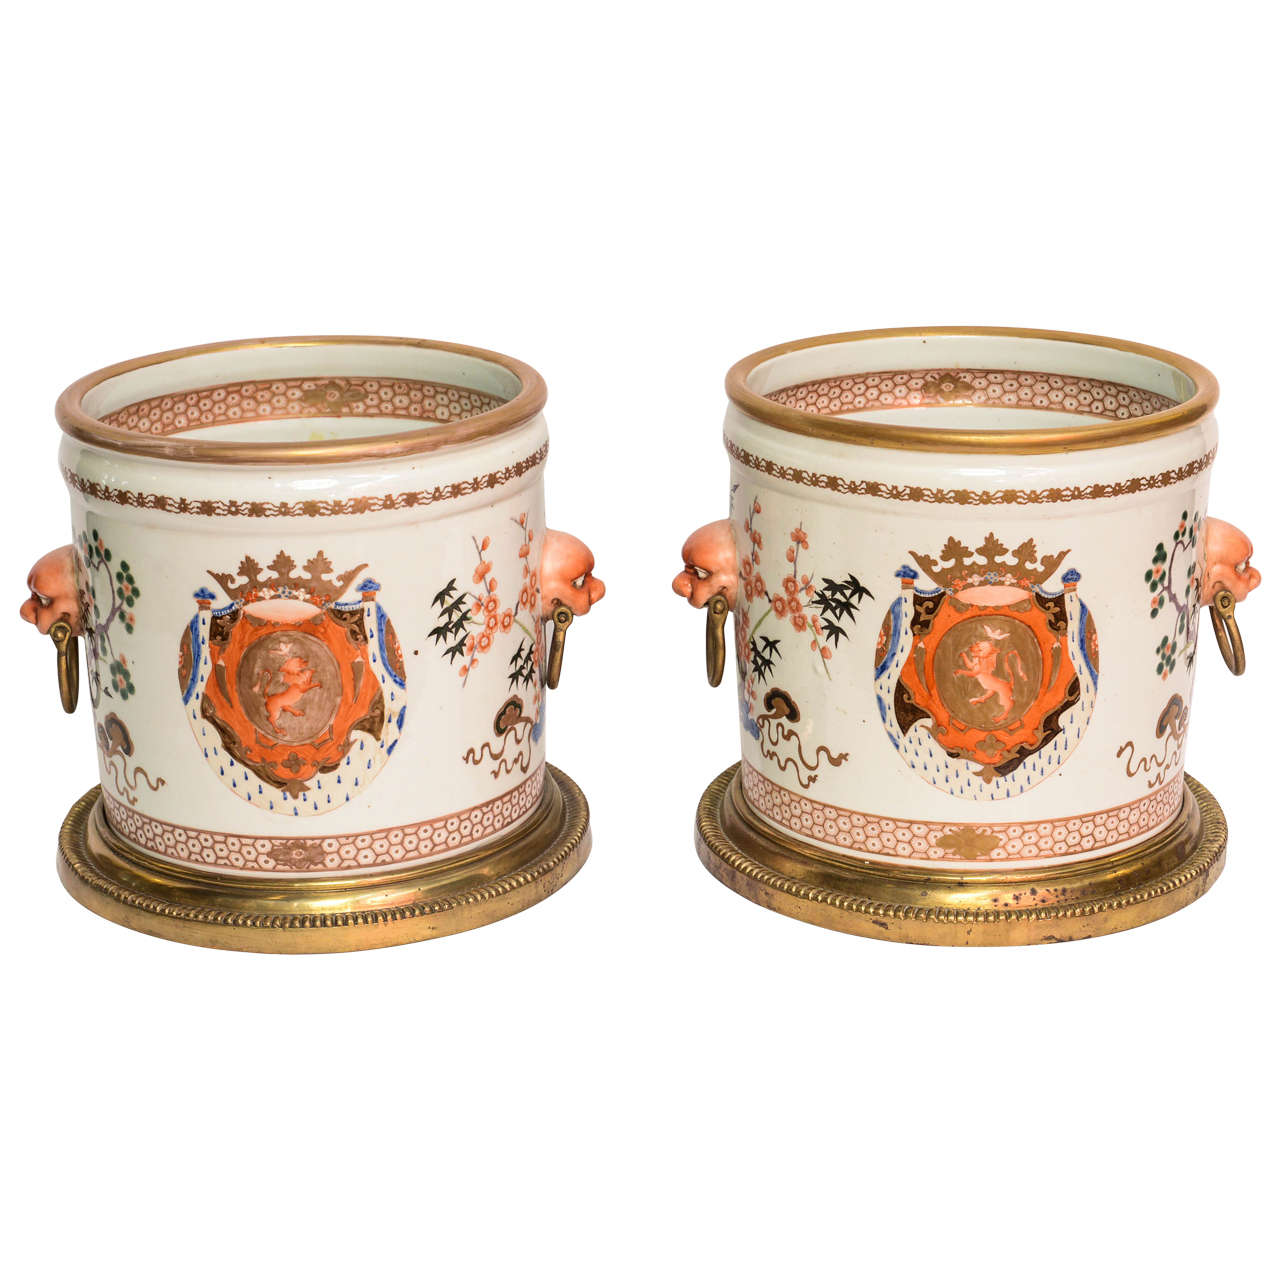 Pair of 19th Century Armorial Cachepots in the Chinese Export Style